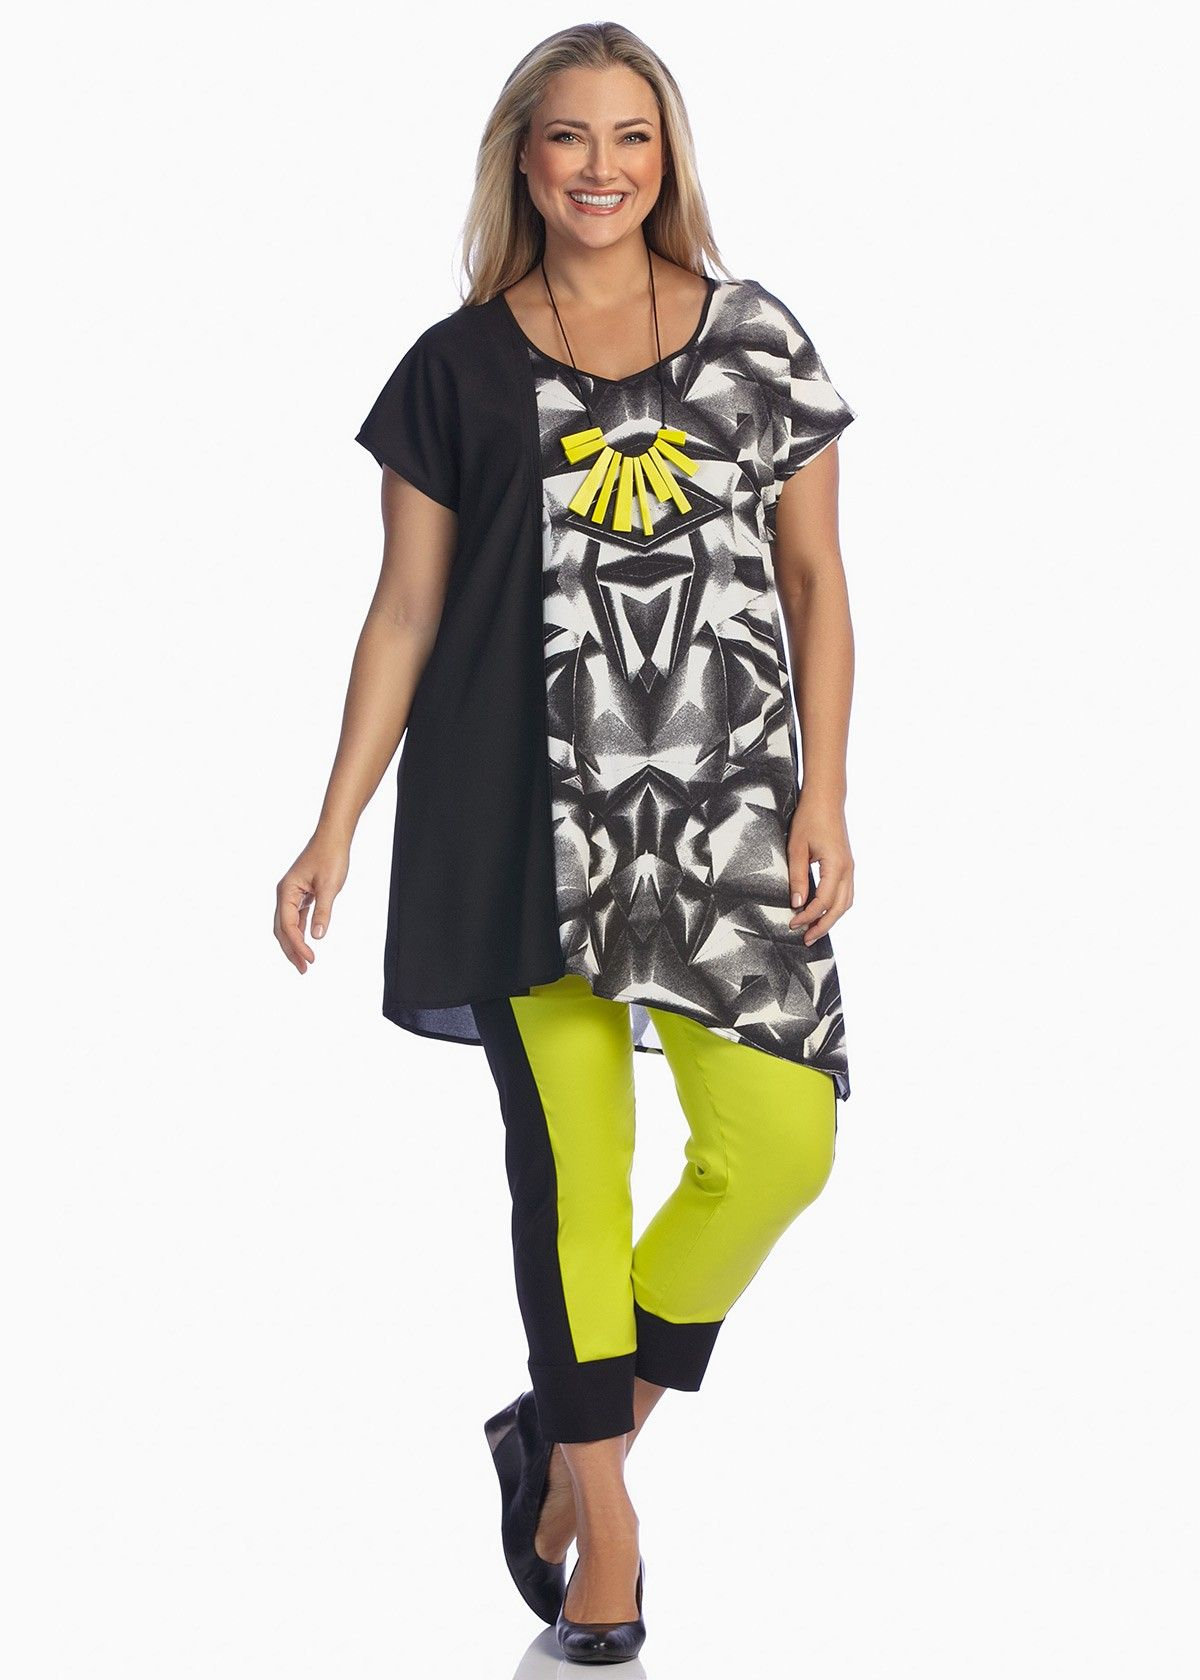 Sea Spray Tunic Only £55.00 On takingshape.com - http://bit.ly/1NciqXo #Clothes